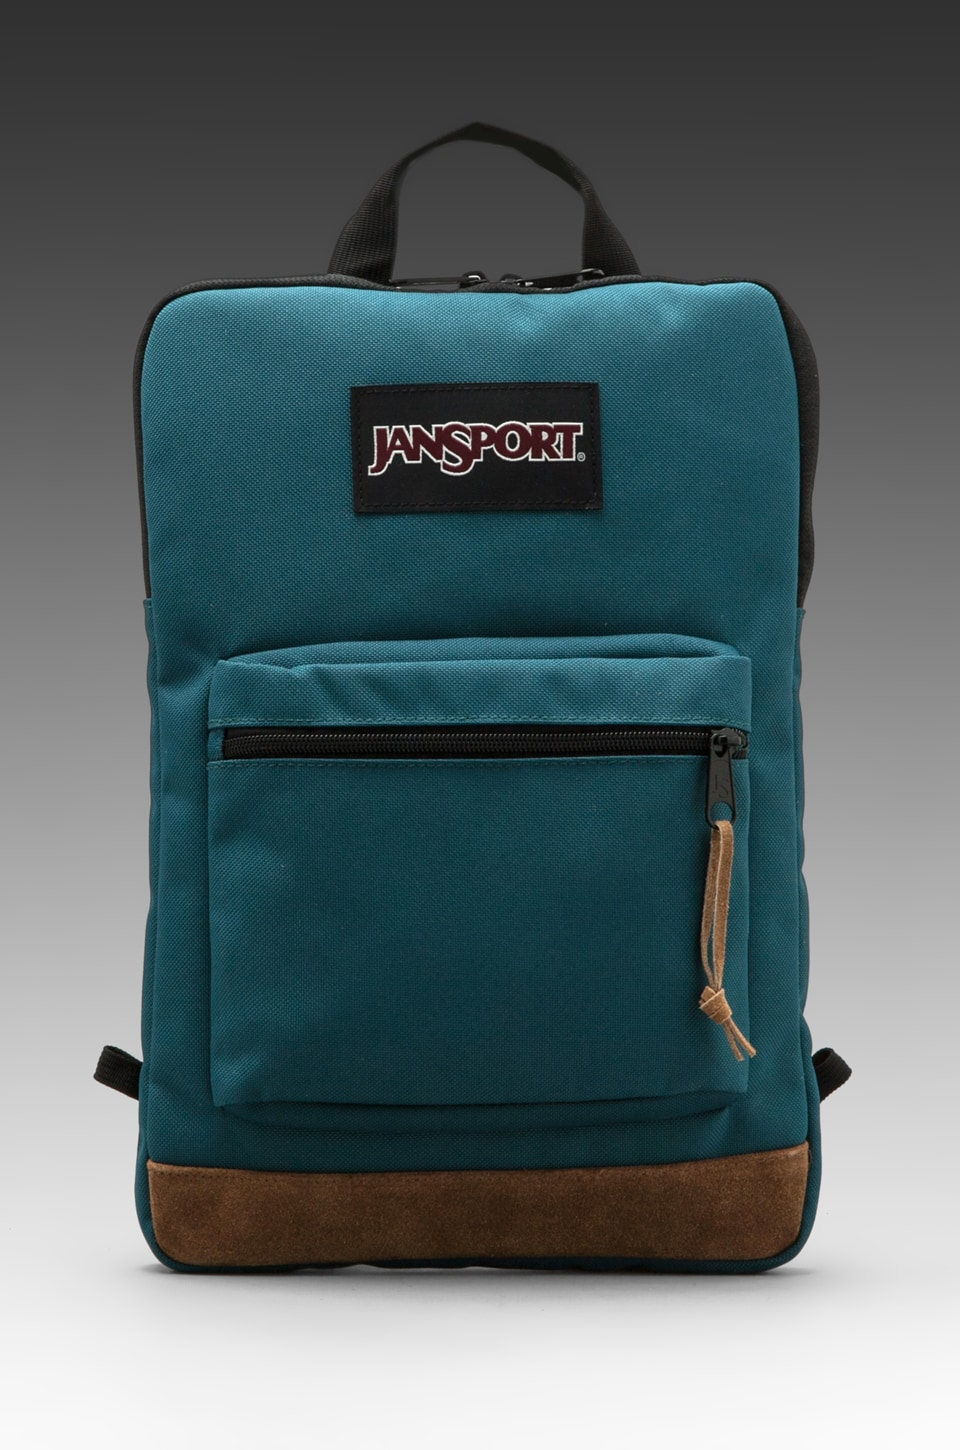 Jansport Right Pack Sleeve in Taro Teal